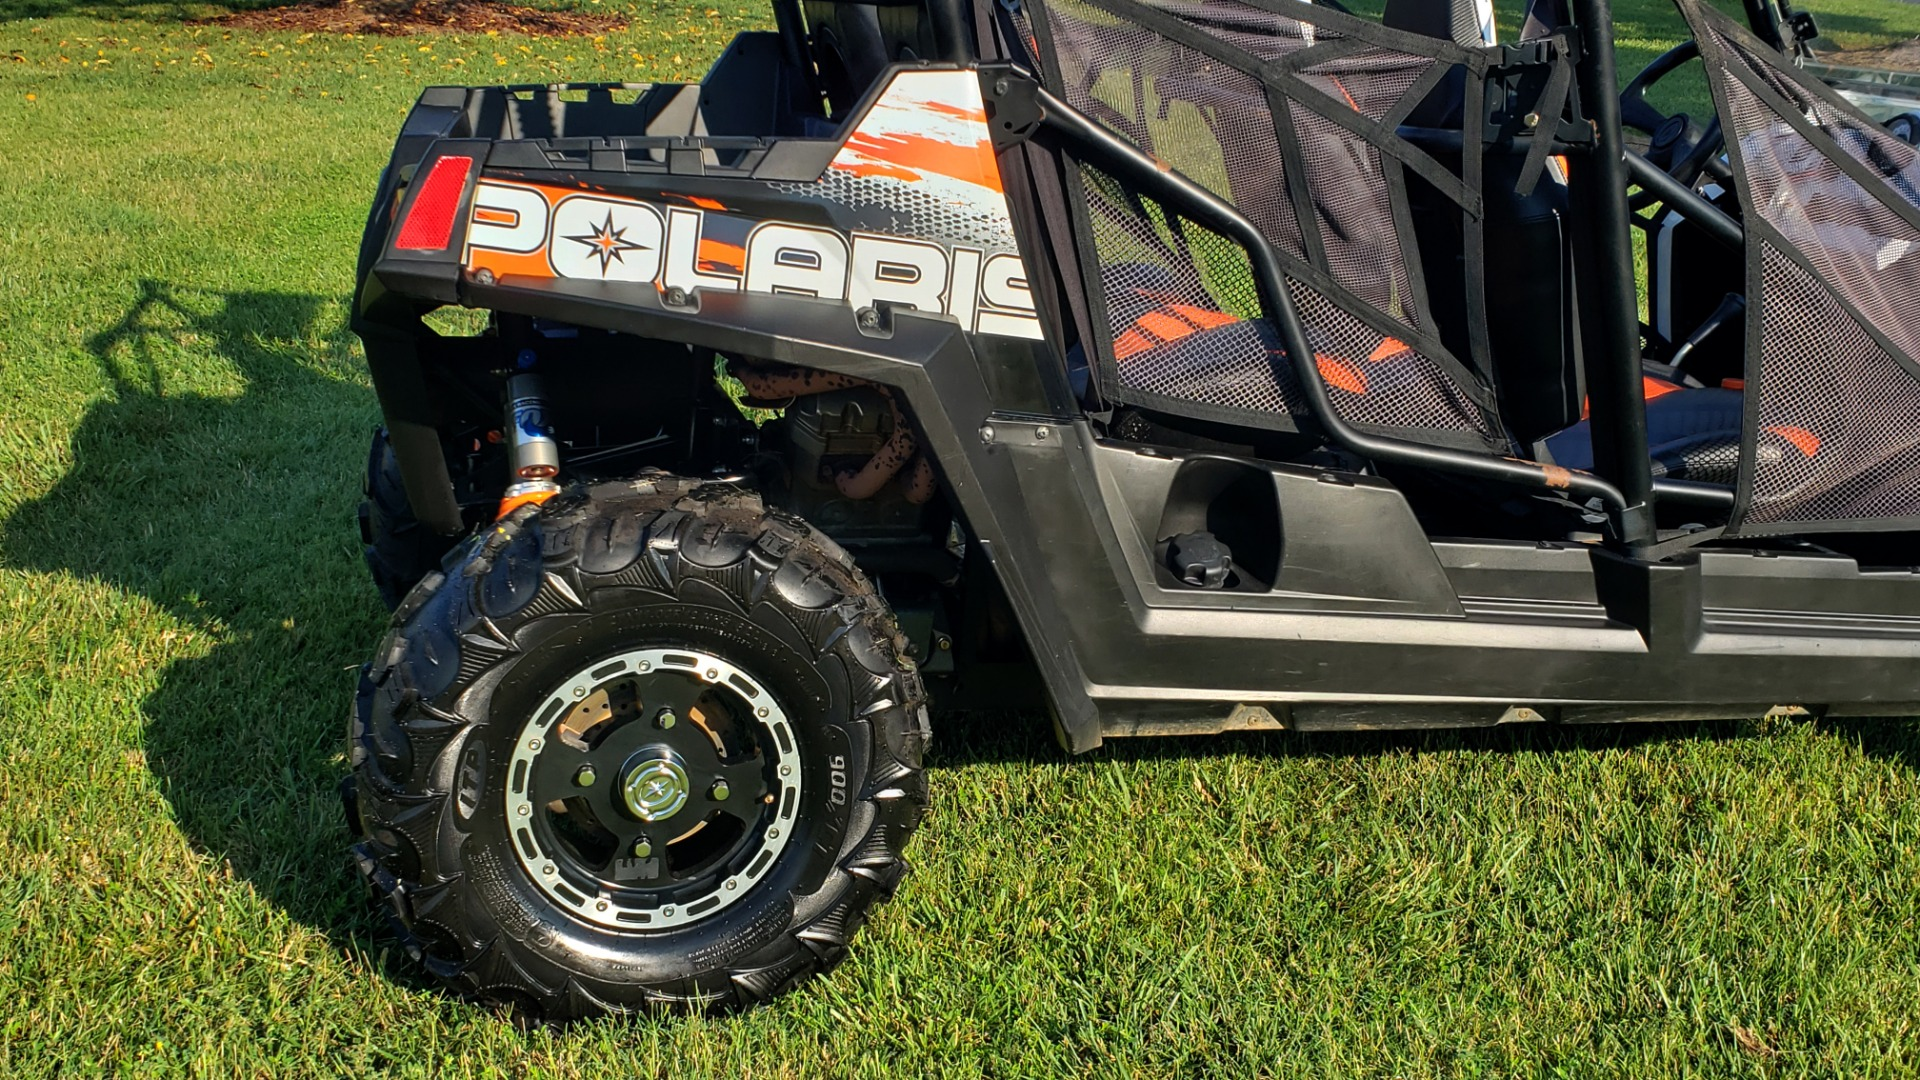 Used 2012 POLARIS RANGER RZR4 / HO 800 EFI / IPHONE CONNECT / SPEAKERS / NEW TIRES for sale Sold at Formula Imports in Charlotte NC 28227 10